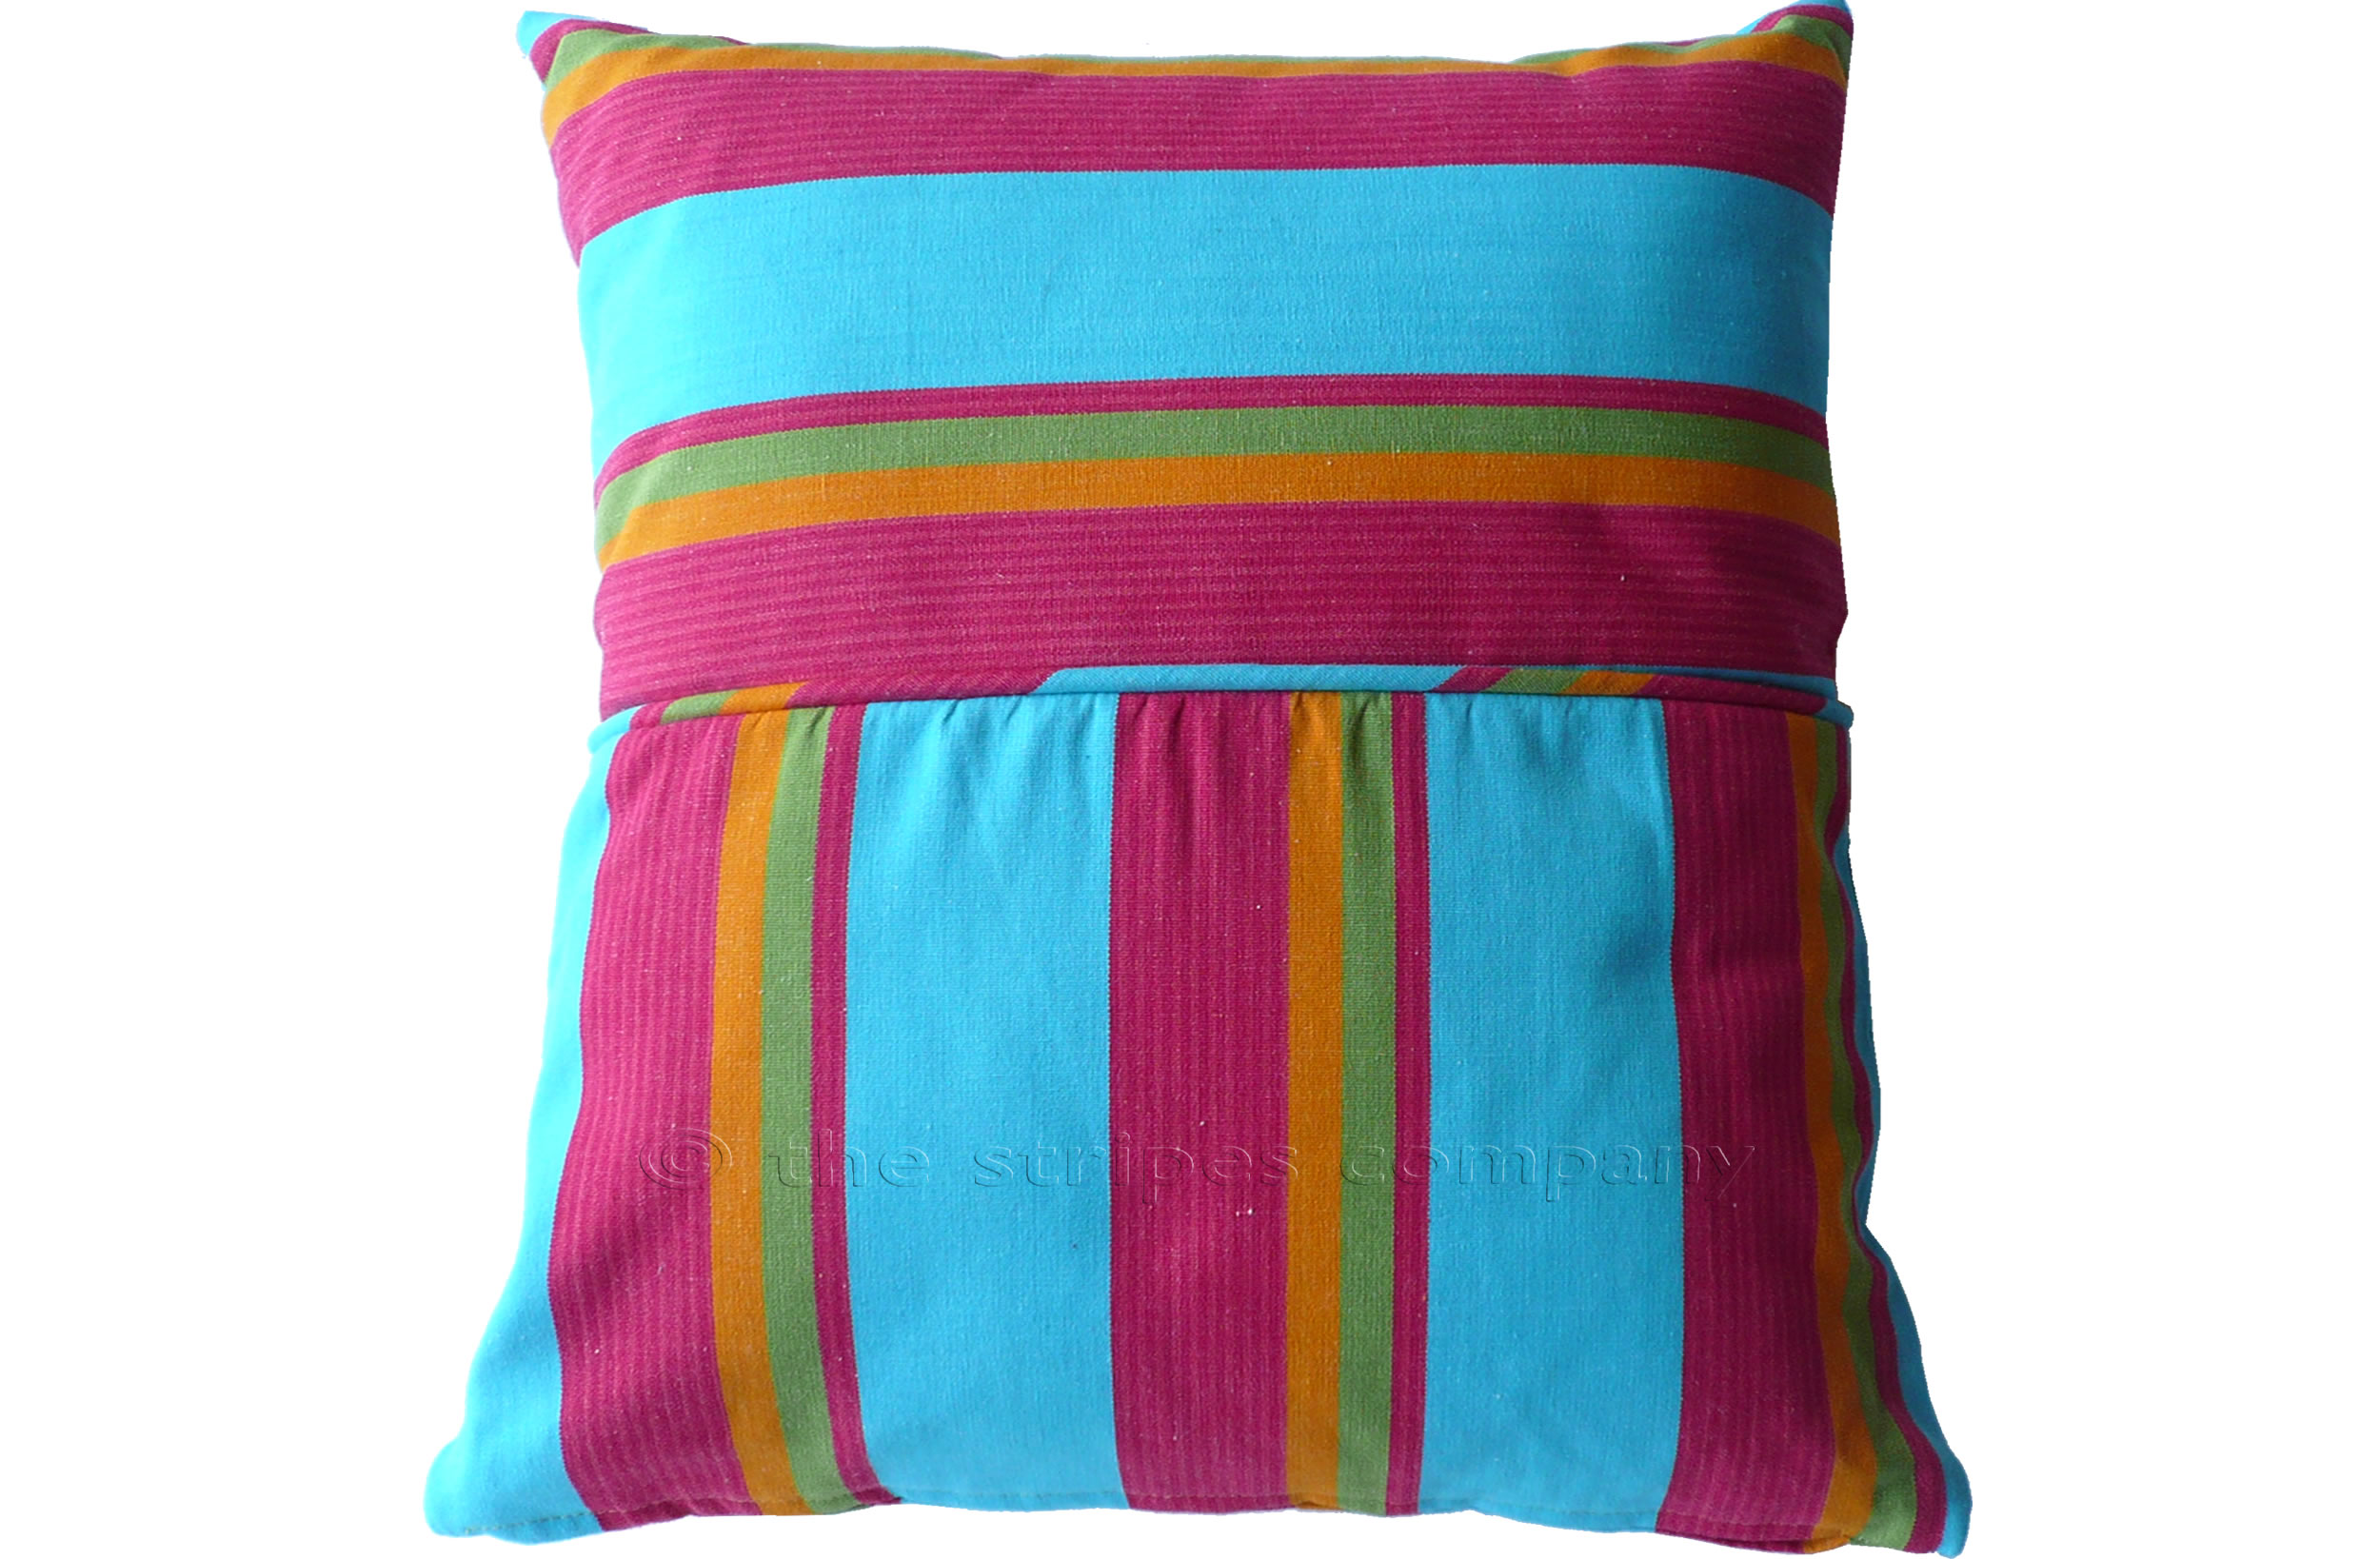 Turquoise Striped Piped Cushions | Square Piped Cushions Fastnet Stripes